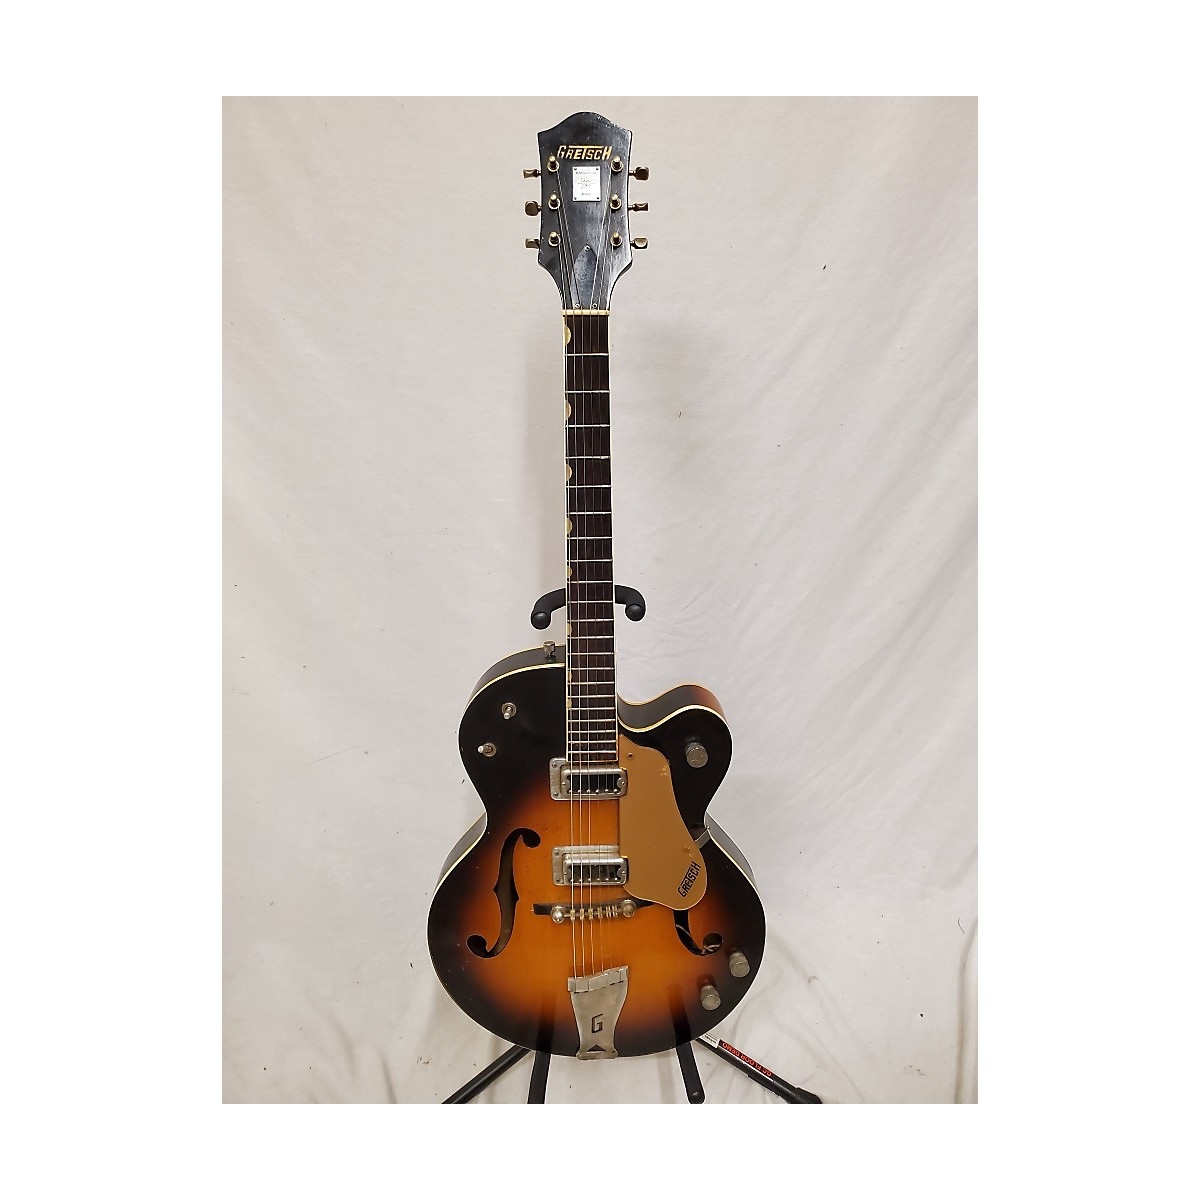 Gretsch Guitars 1963 DOUBLE ANNIVERSARY Hollow Body Electric Guitar